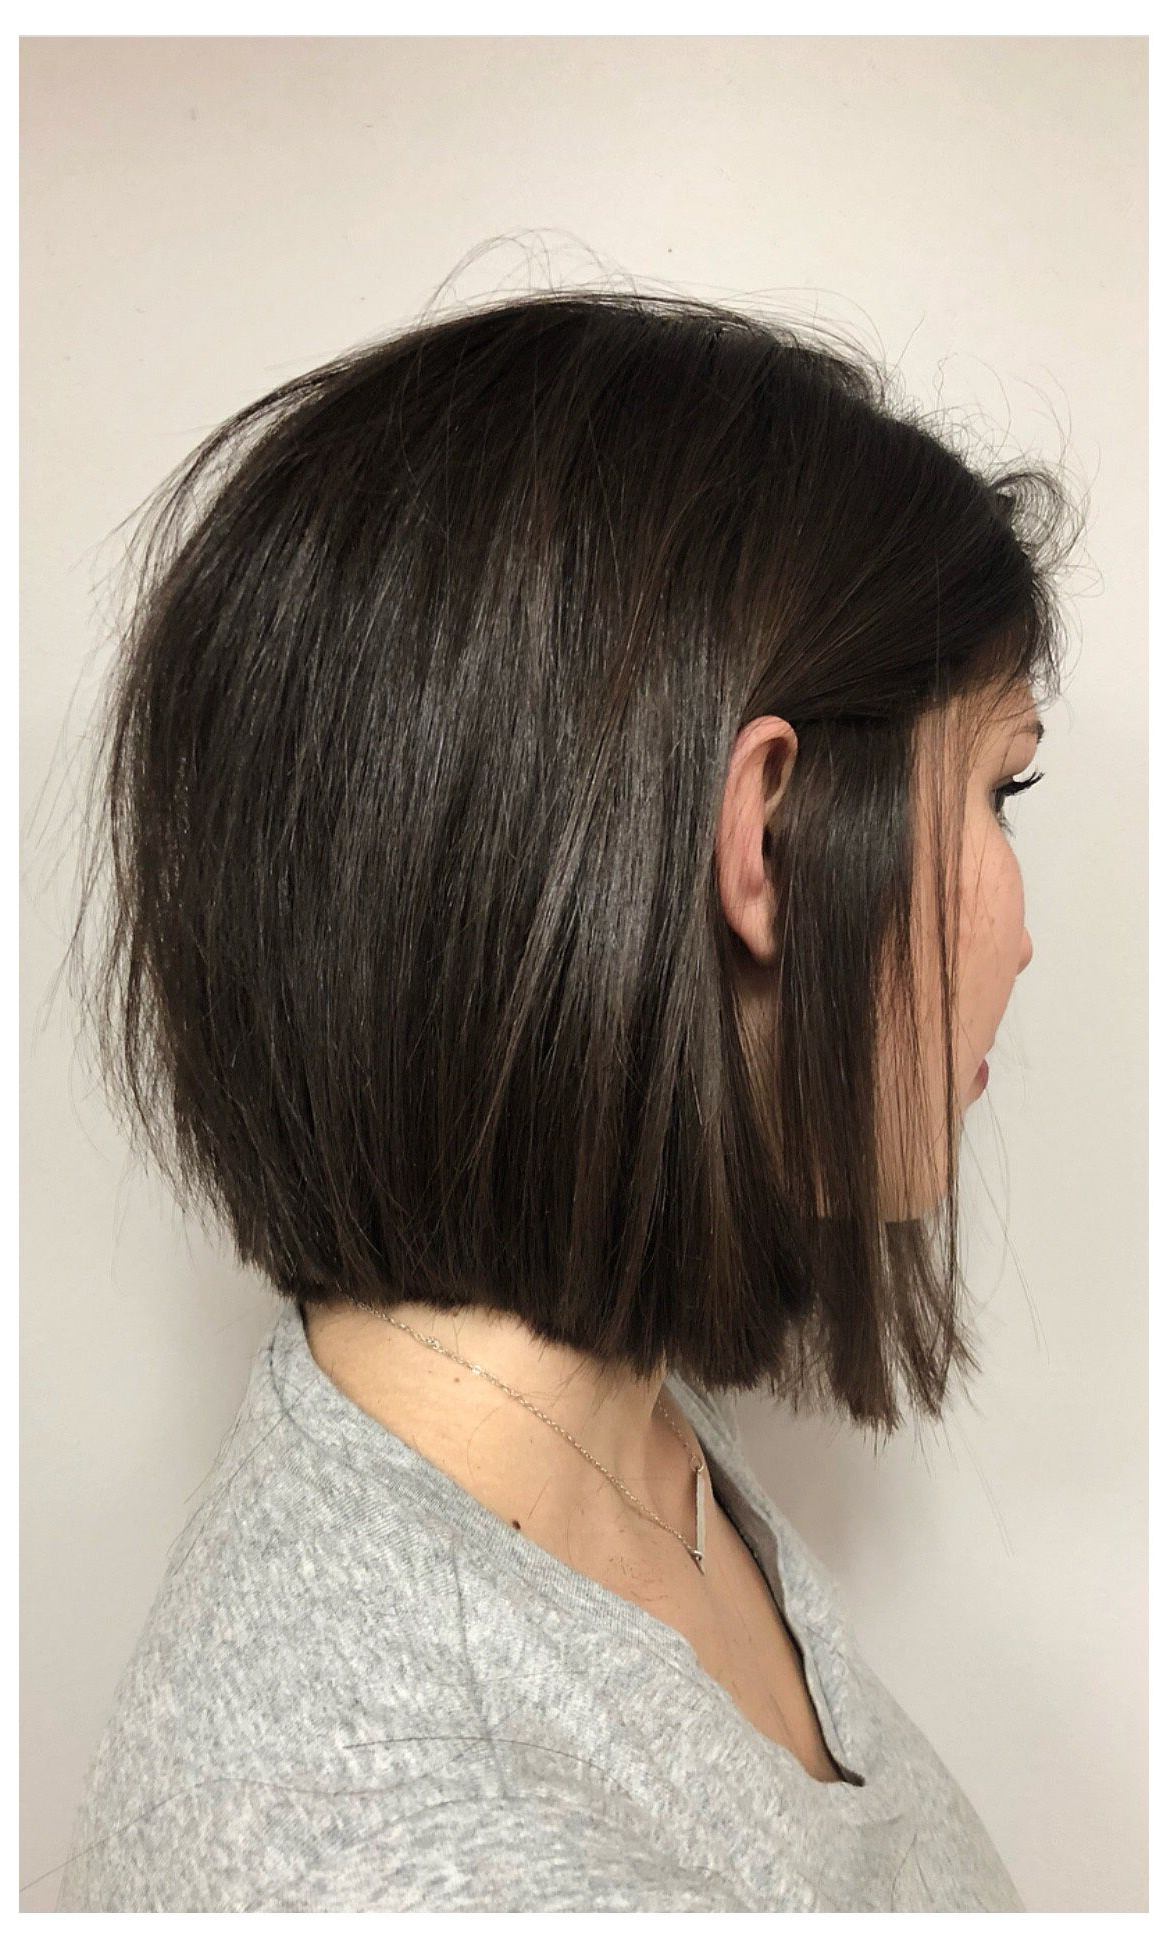 Pin On Mid Cut With Regard To Widely Used Round Bob Hairstyles With Front Bang (View 16 of 20)